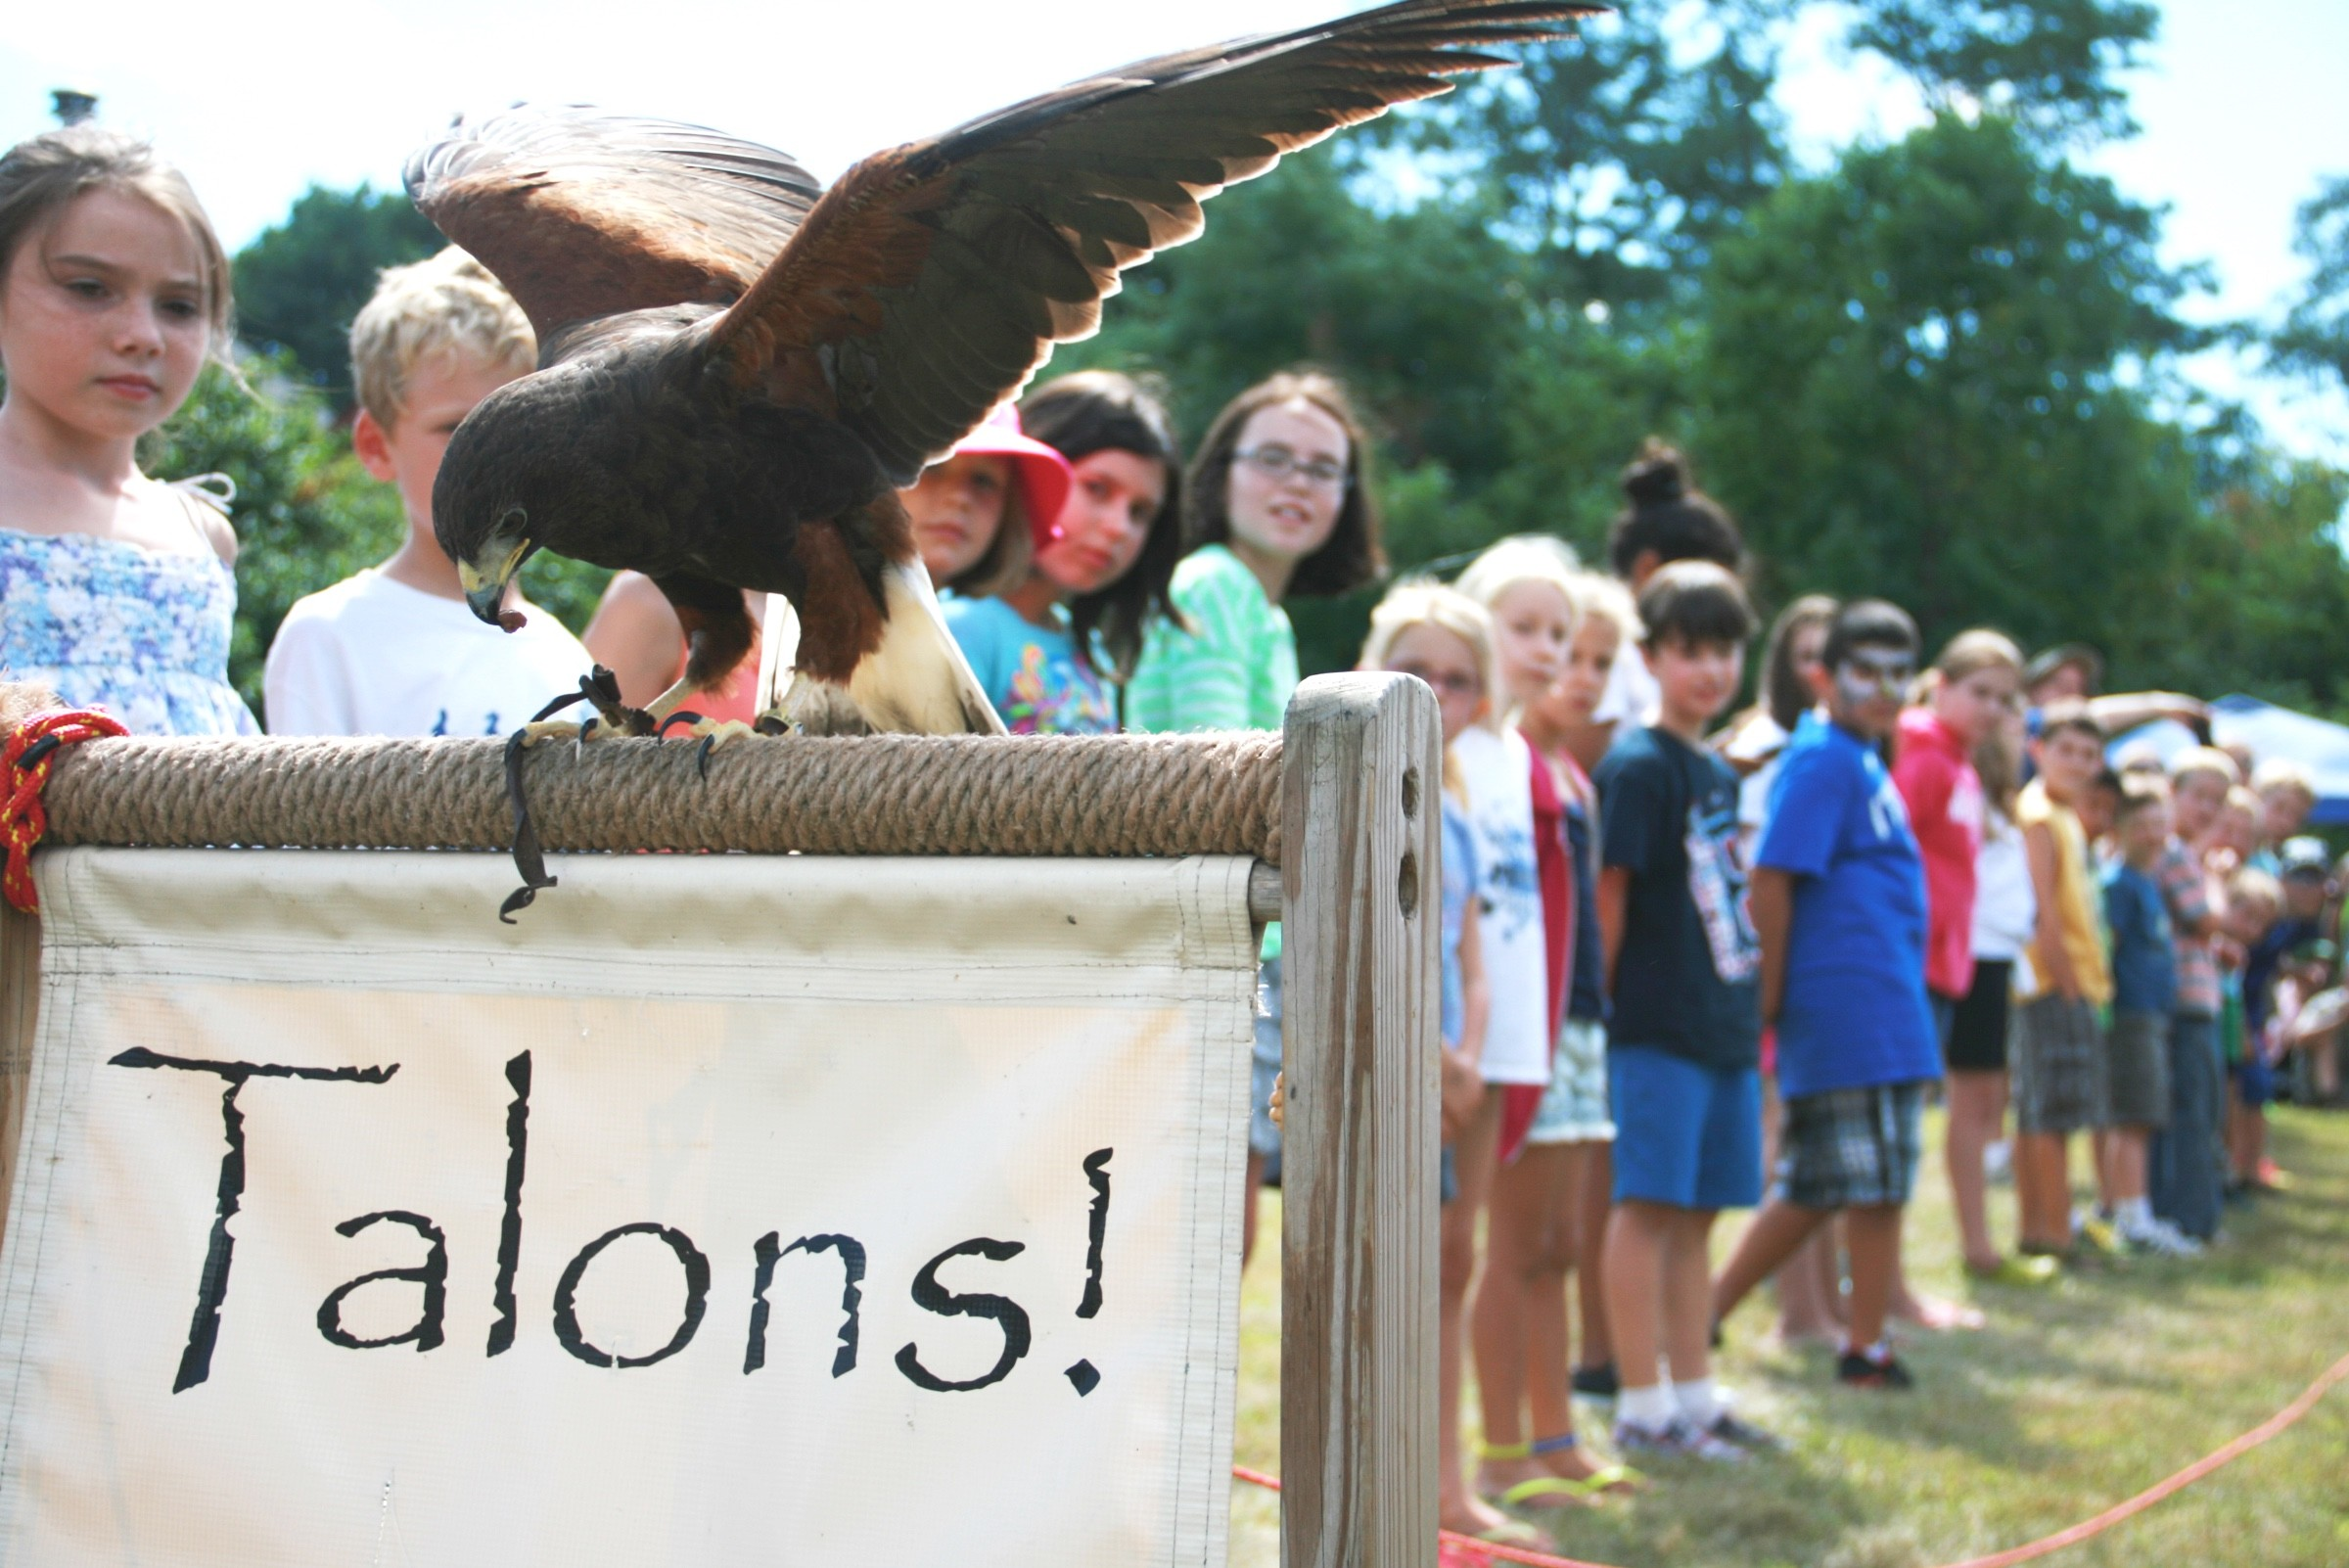 A Harris's Hawk swoops down along row of kids at Raptor Weekend